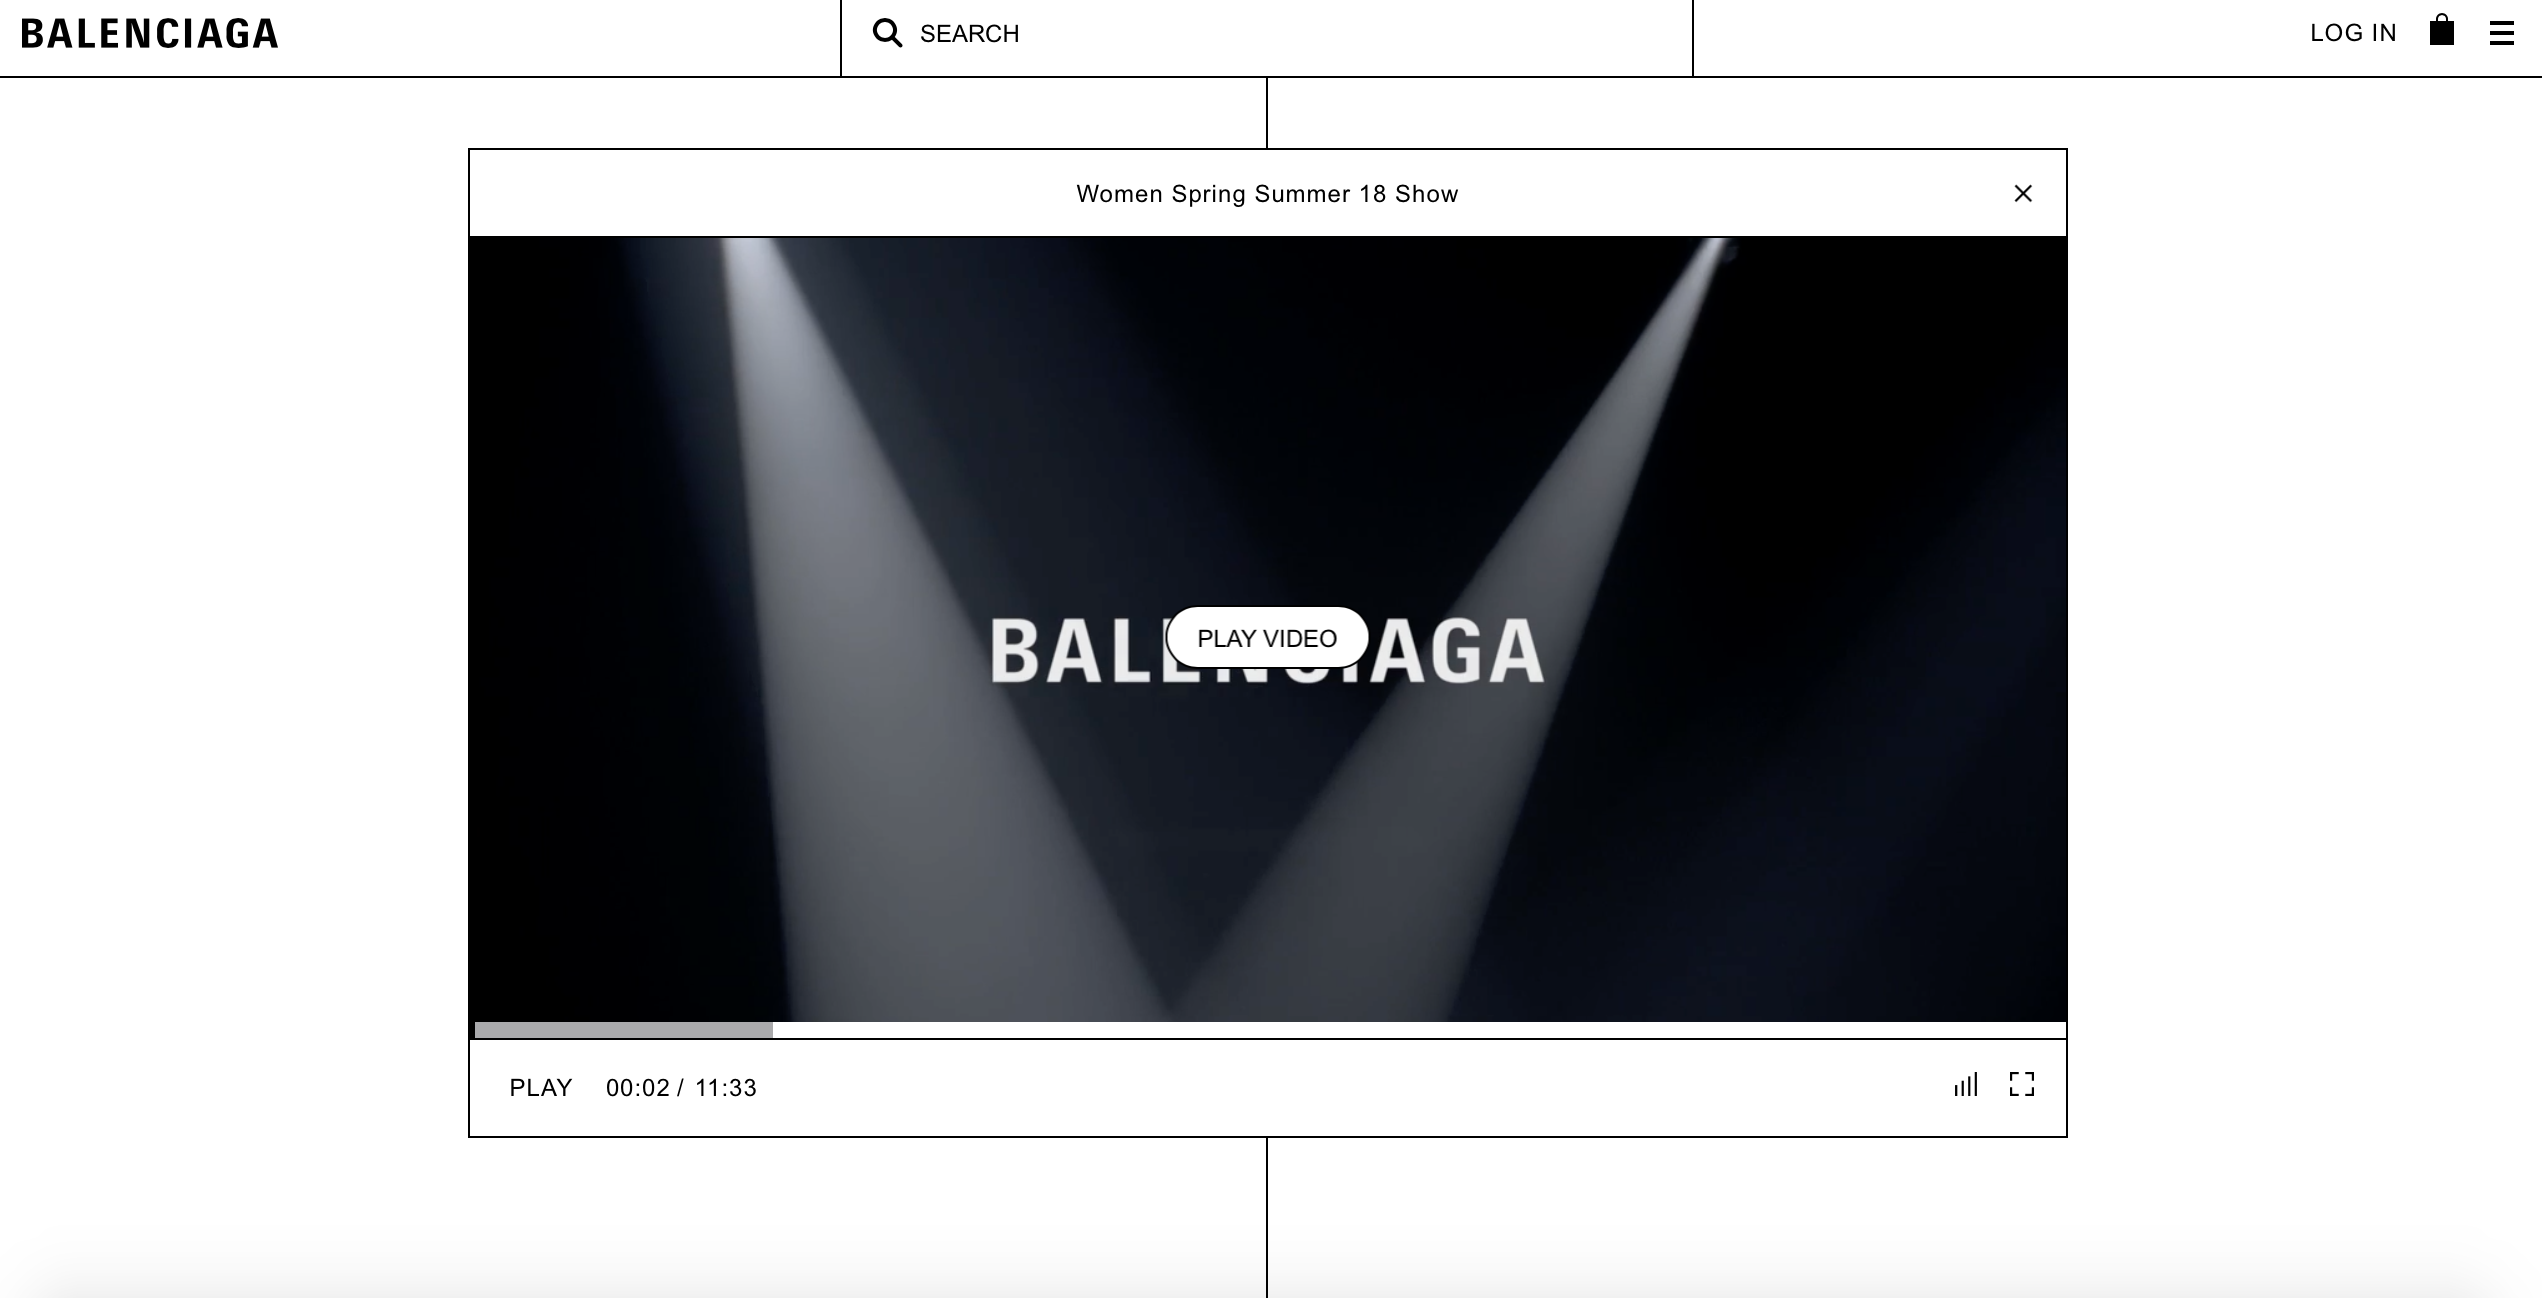 Balenciaga website and brand